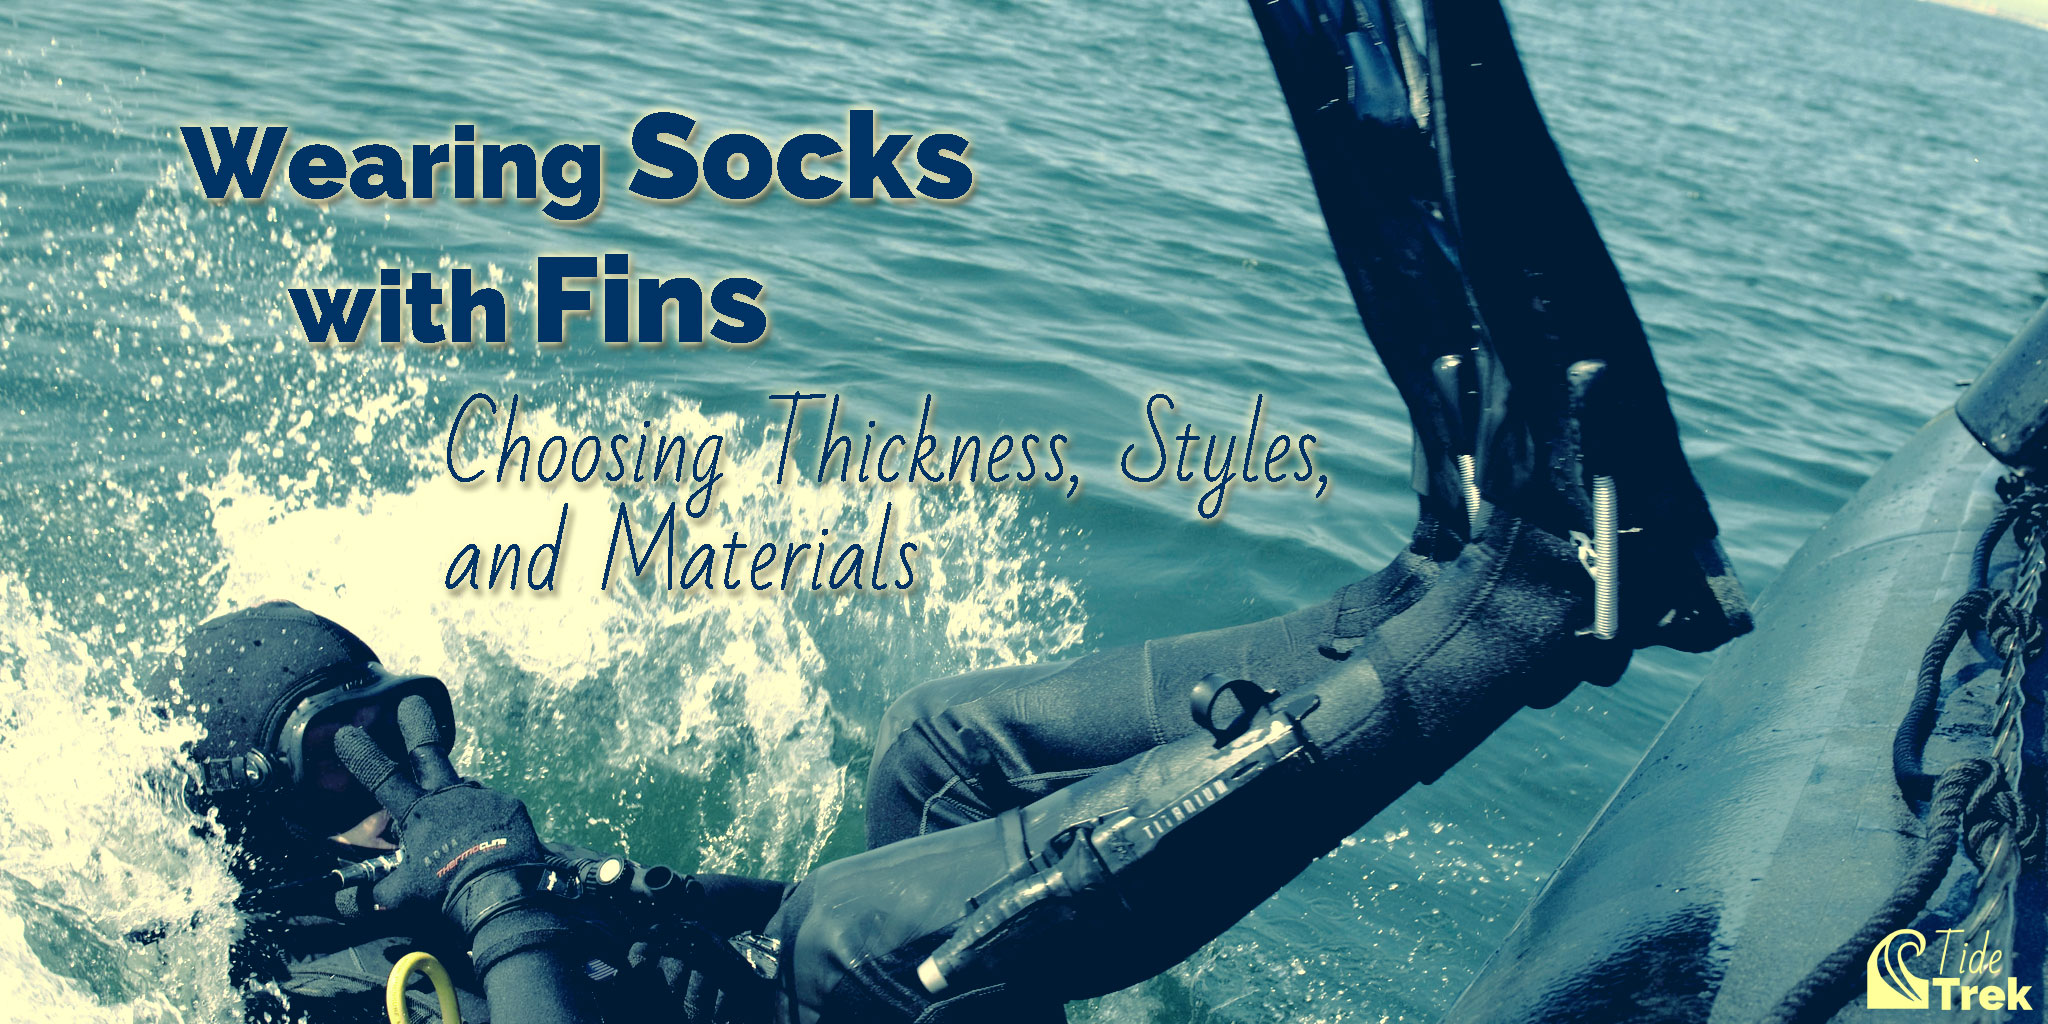 Wearing socks with fins: Choosing Thickness, Styles, and Materials